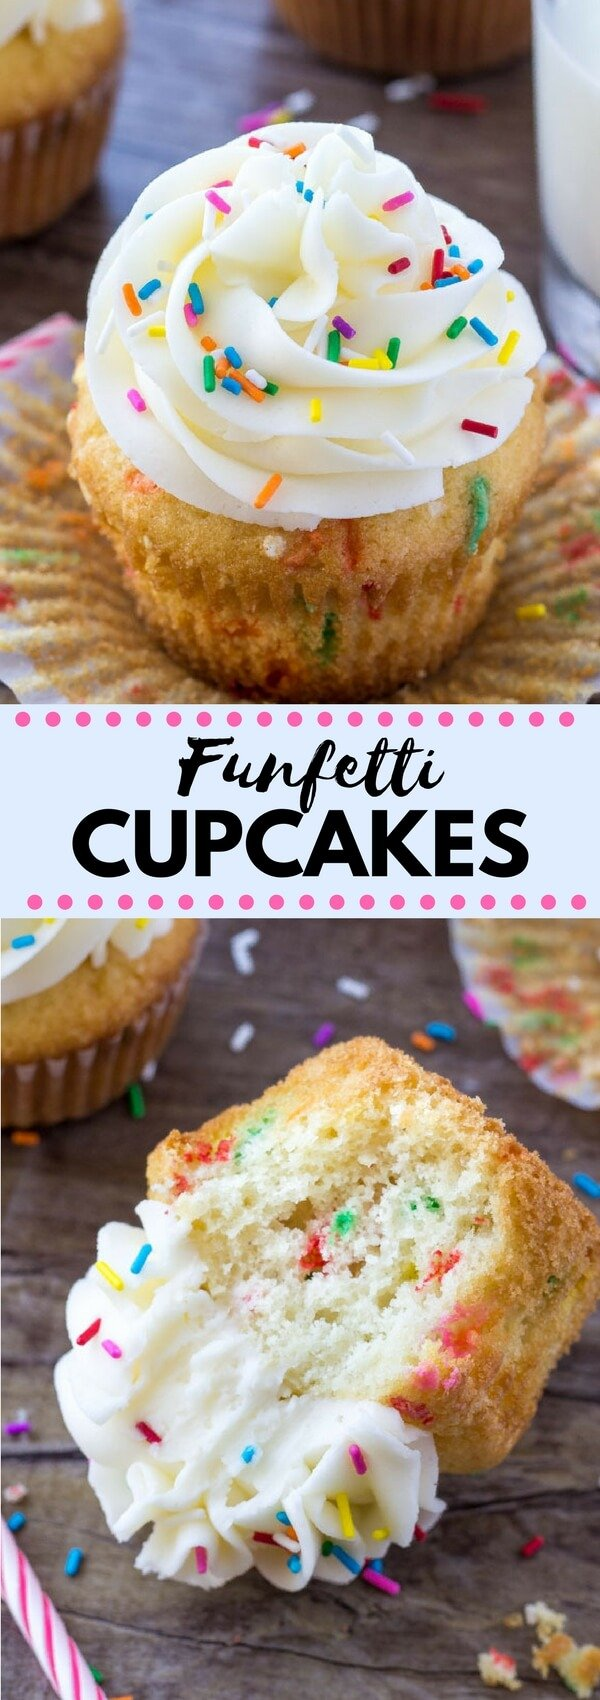 These Funfetti Cupcakes are way better than any box mix. Light & fluffy, perfectly moist, filled with sprinkles and piled high with vanilla buttercream. #funfetti #cupcakes #recipes #vanillacupcakes